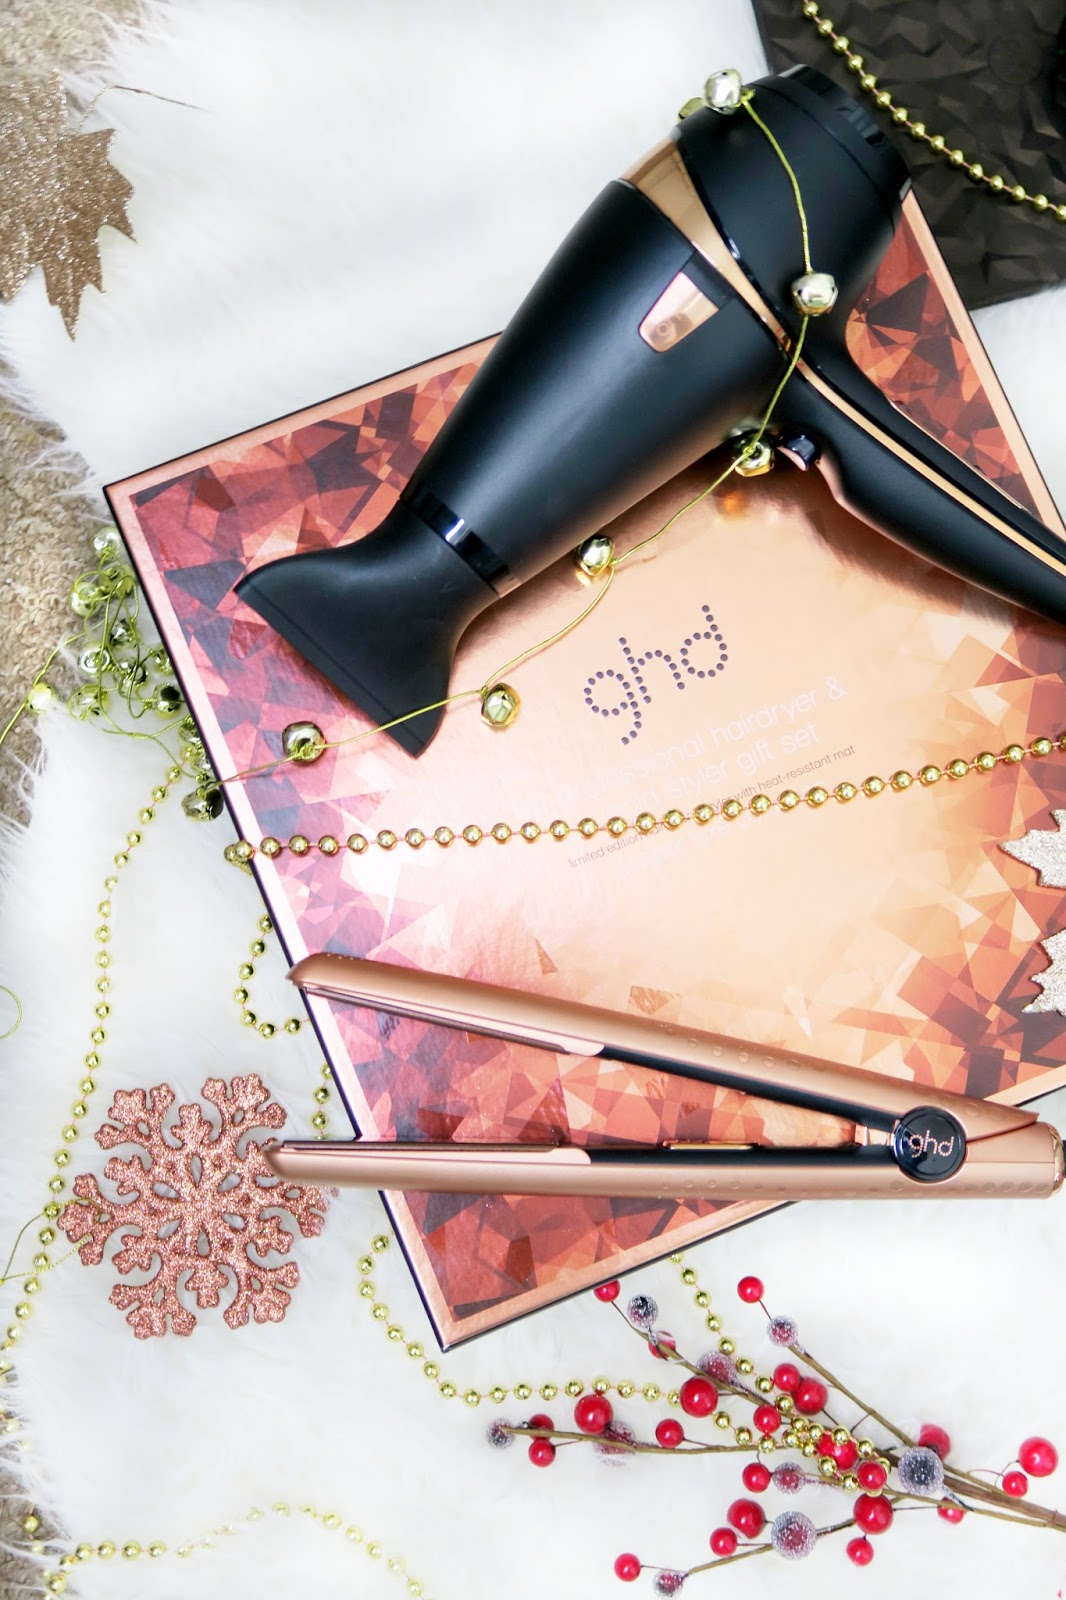 an image of ghd holiday copper luxe set